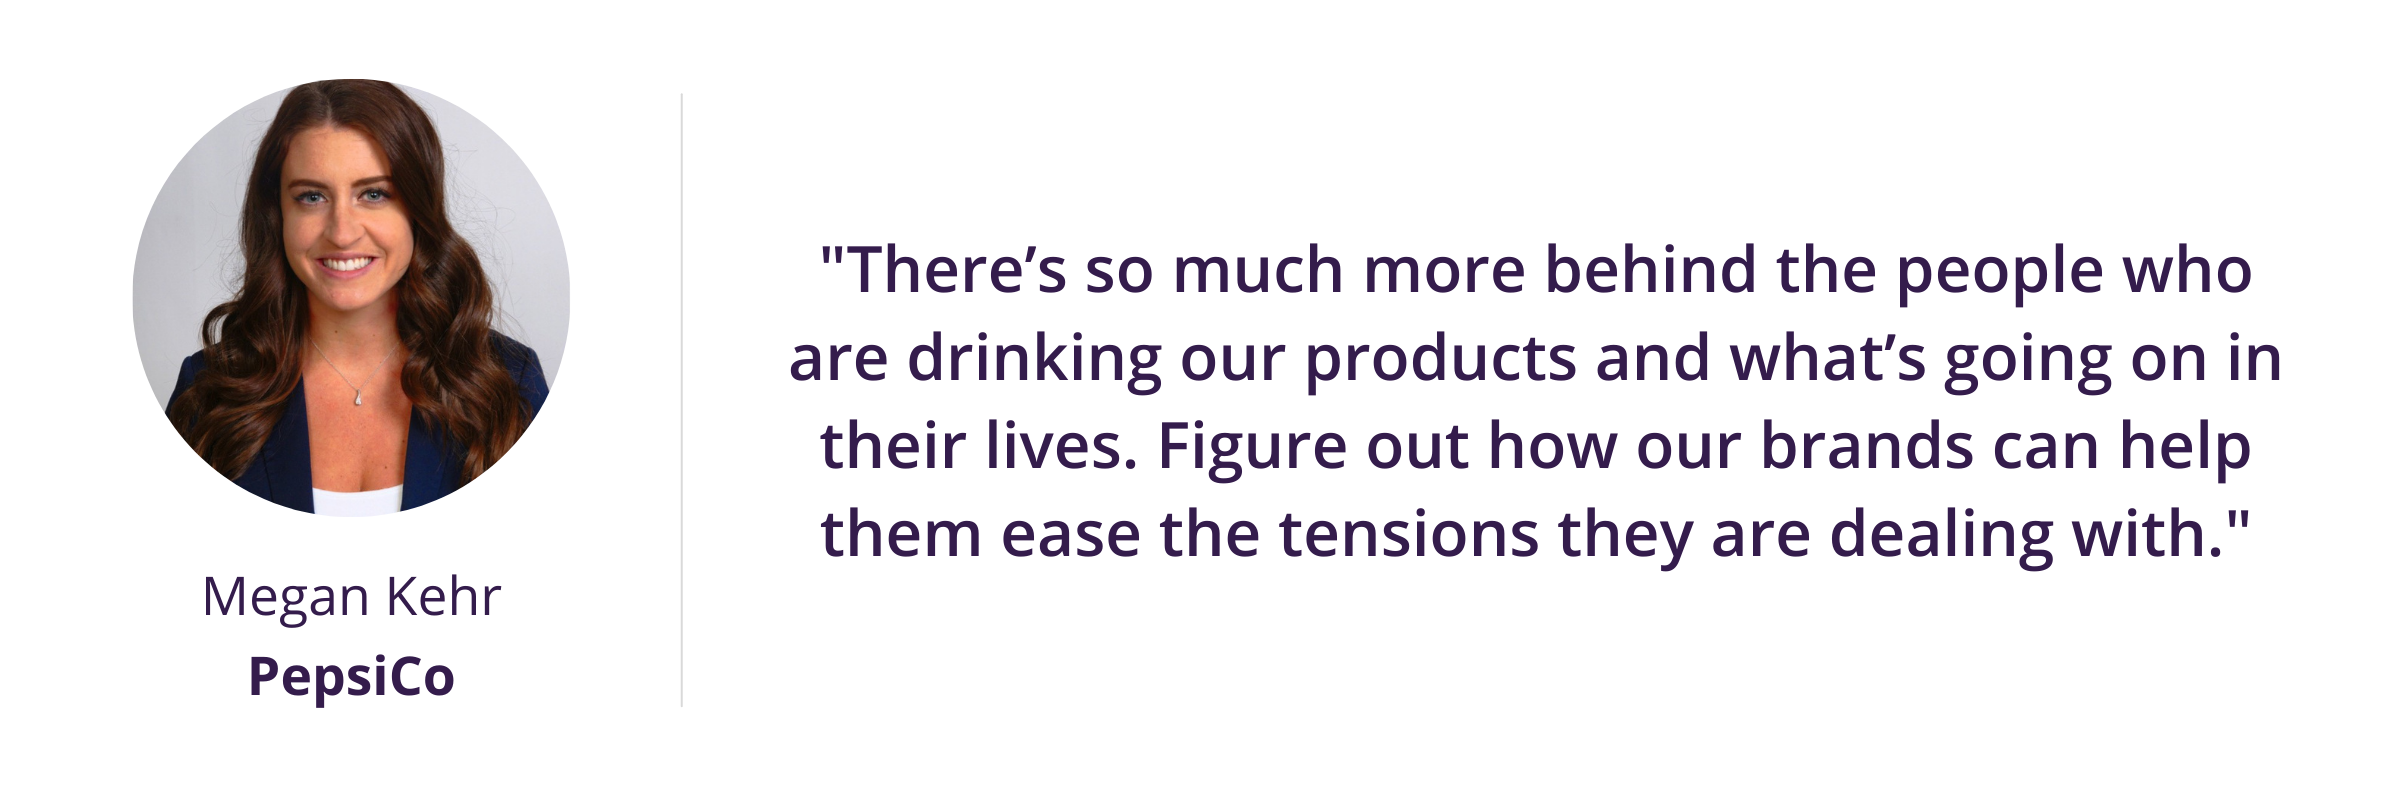 """""""There's so much more behind the people who are drinking our products and what's going on in their lives. Figure out how our brands can help them ease the tensions they are dealing with."""""""